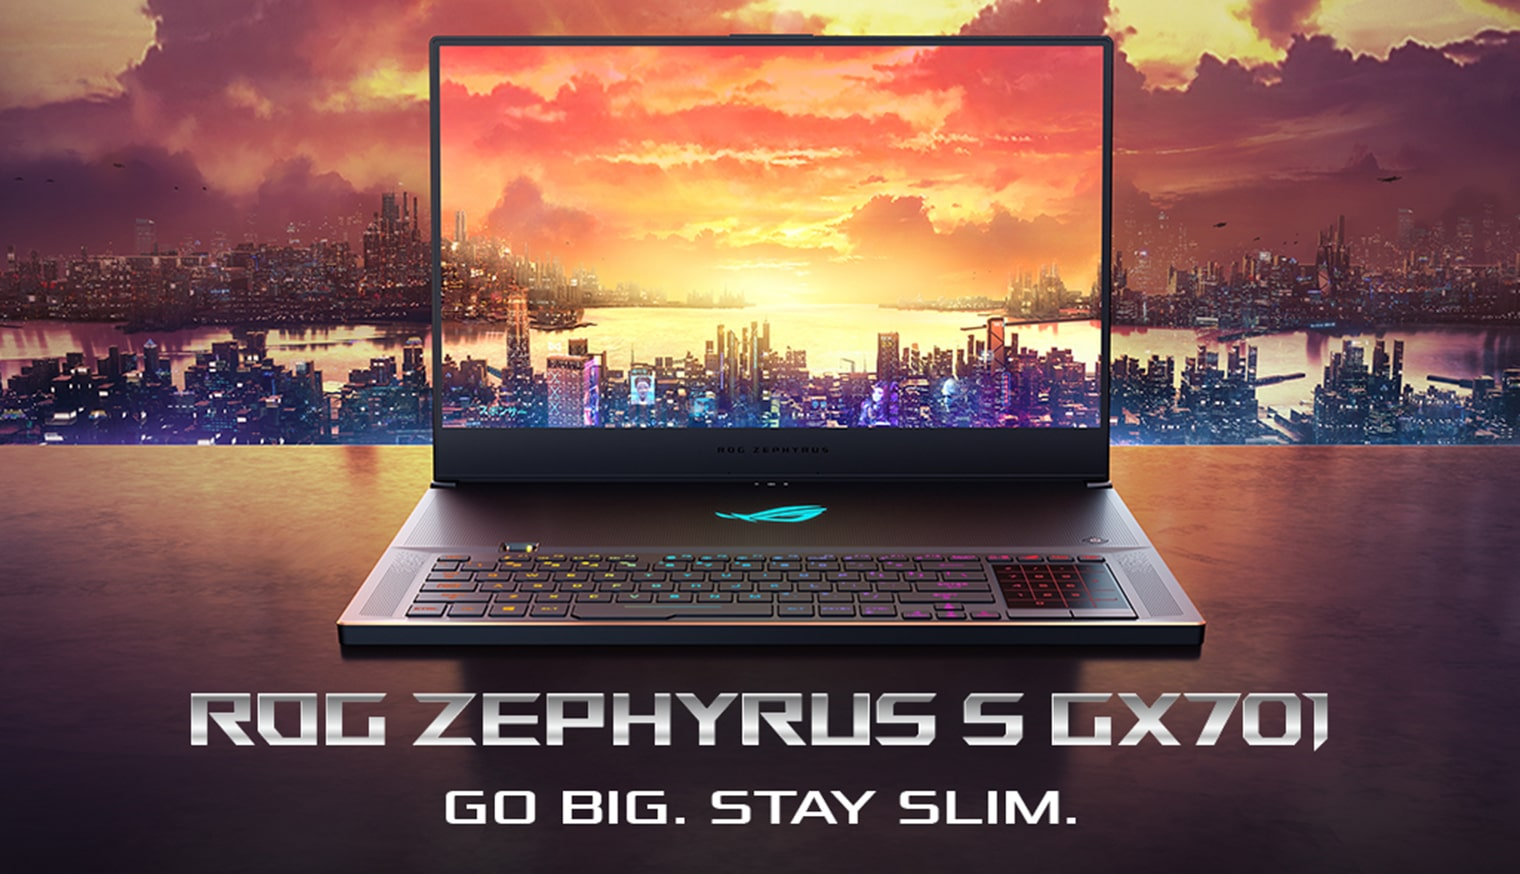 asus rog zephyrus s gx701gw-ps74 price, features & specs